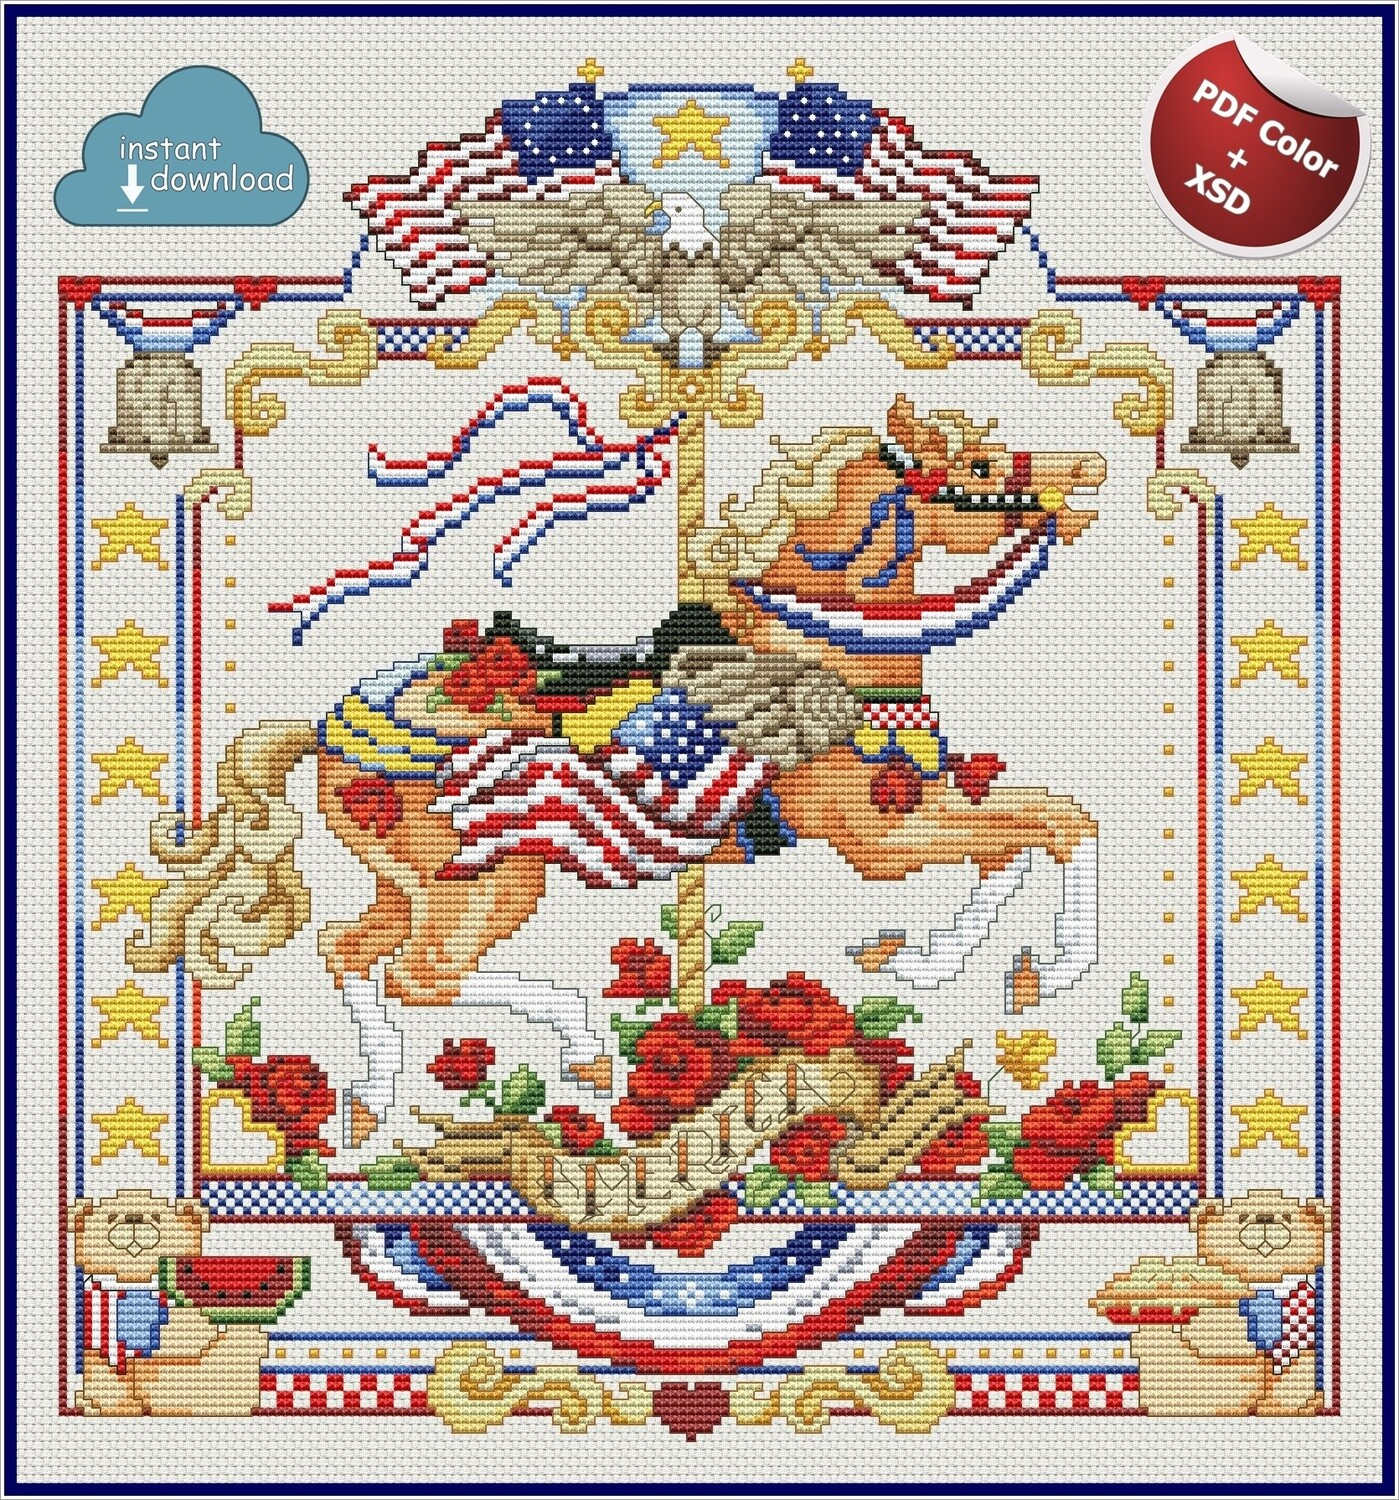 Carousel Horses July Cross Stitch Pattern PDF Color + XSD. Instant Download. Only 1 in stock!